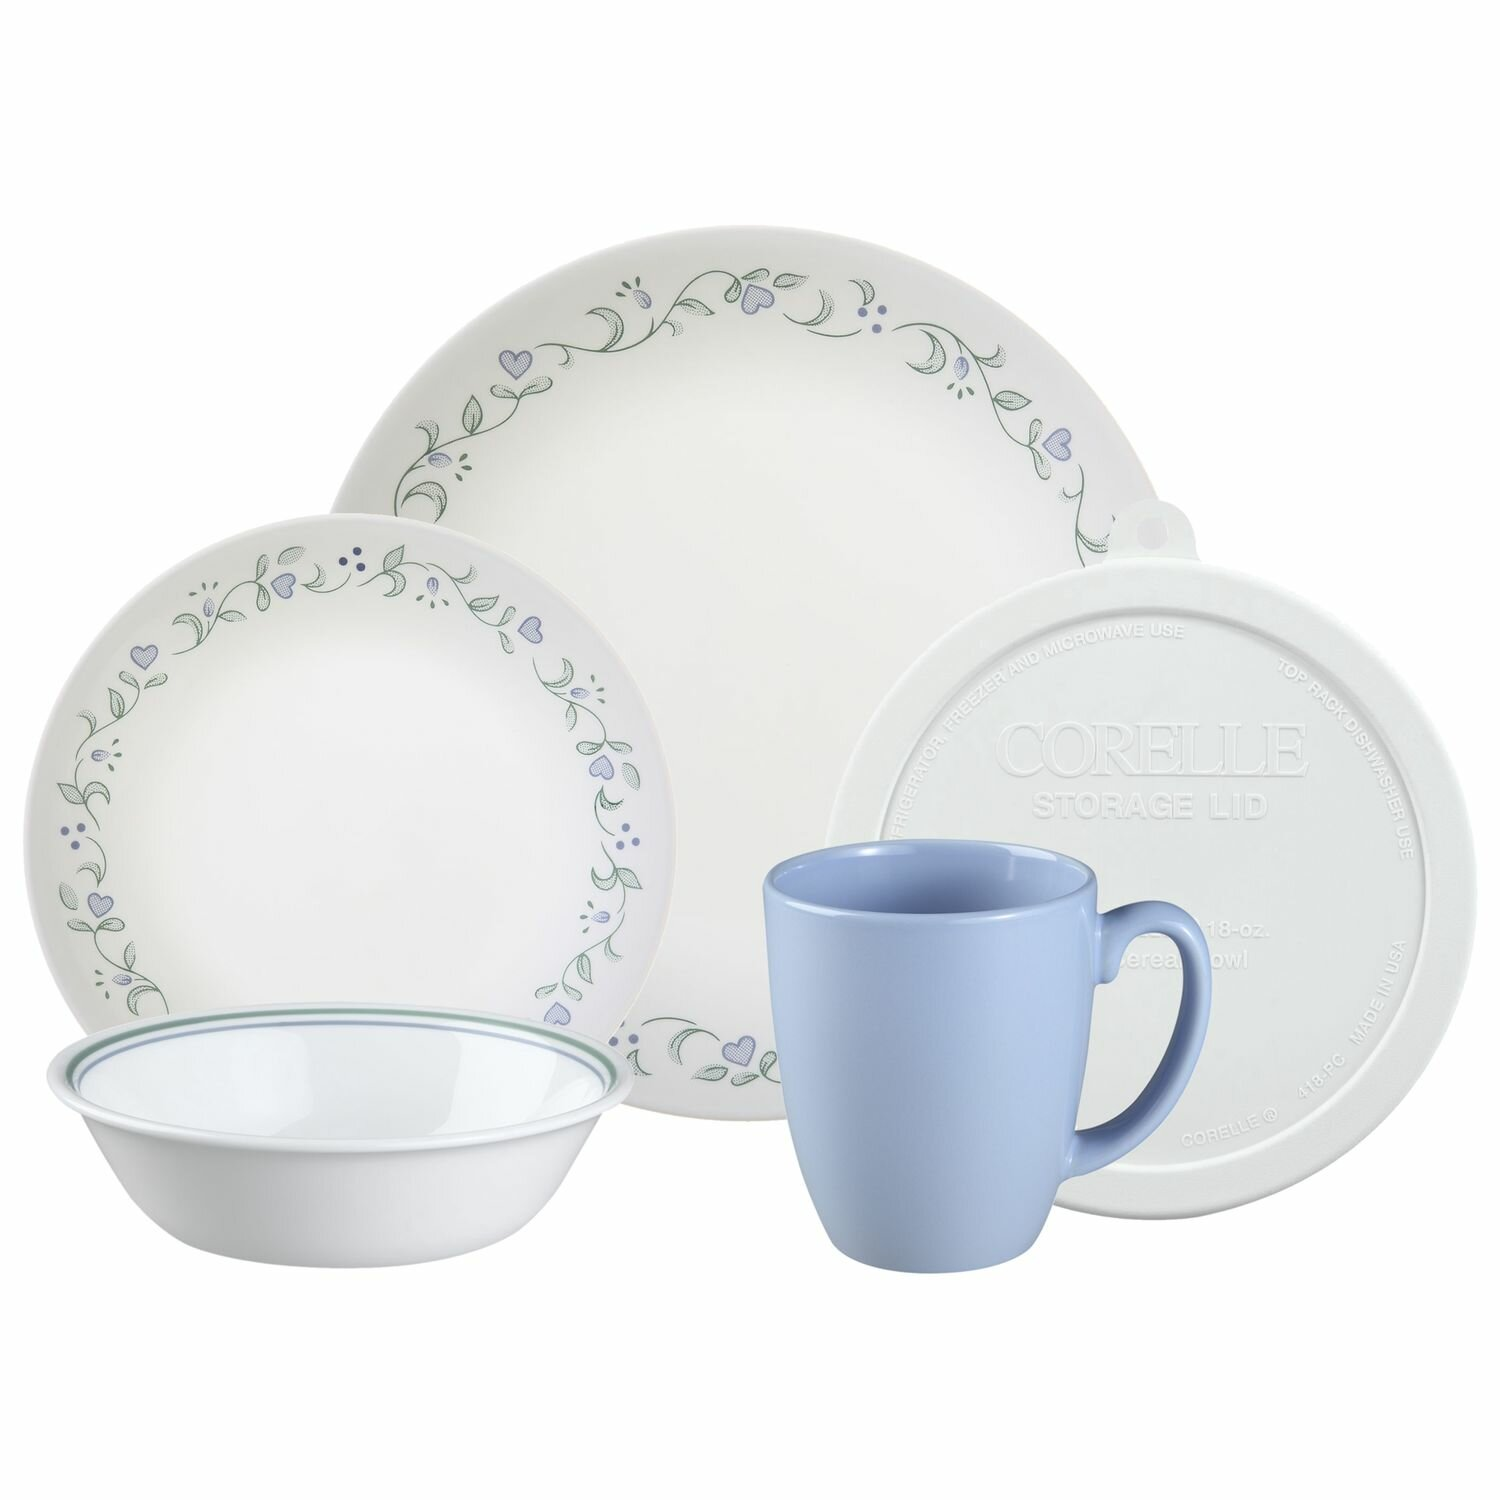 Corelle Livingware Country Cottage 20 Piece Dinnerware Set